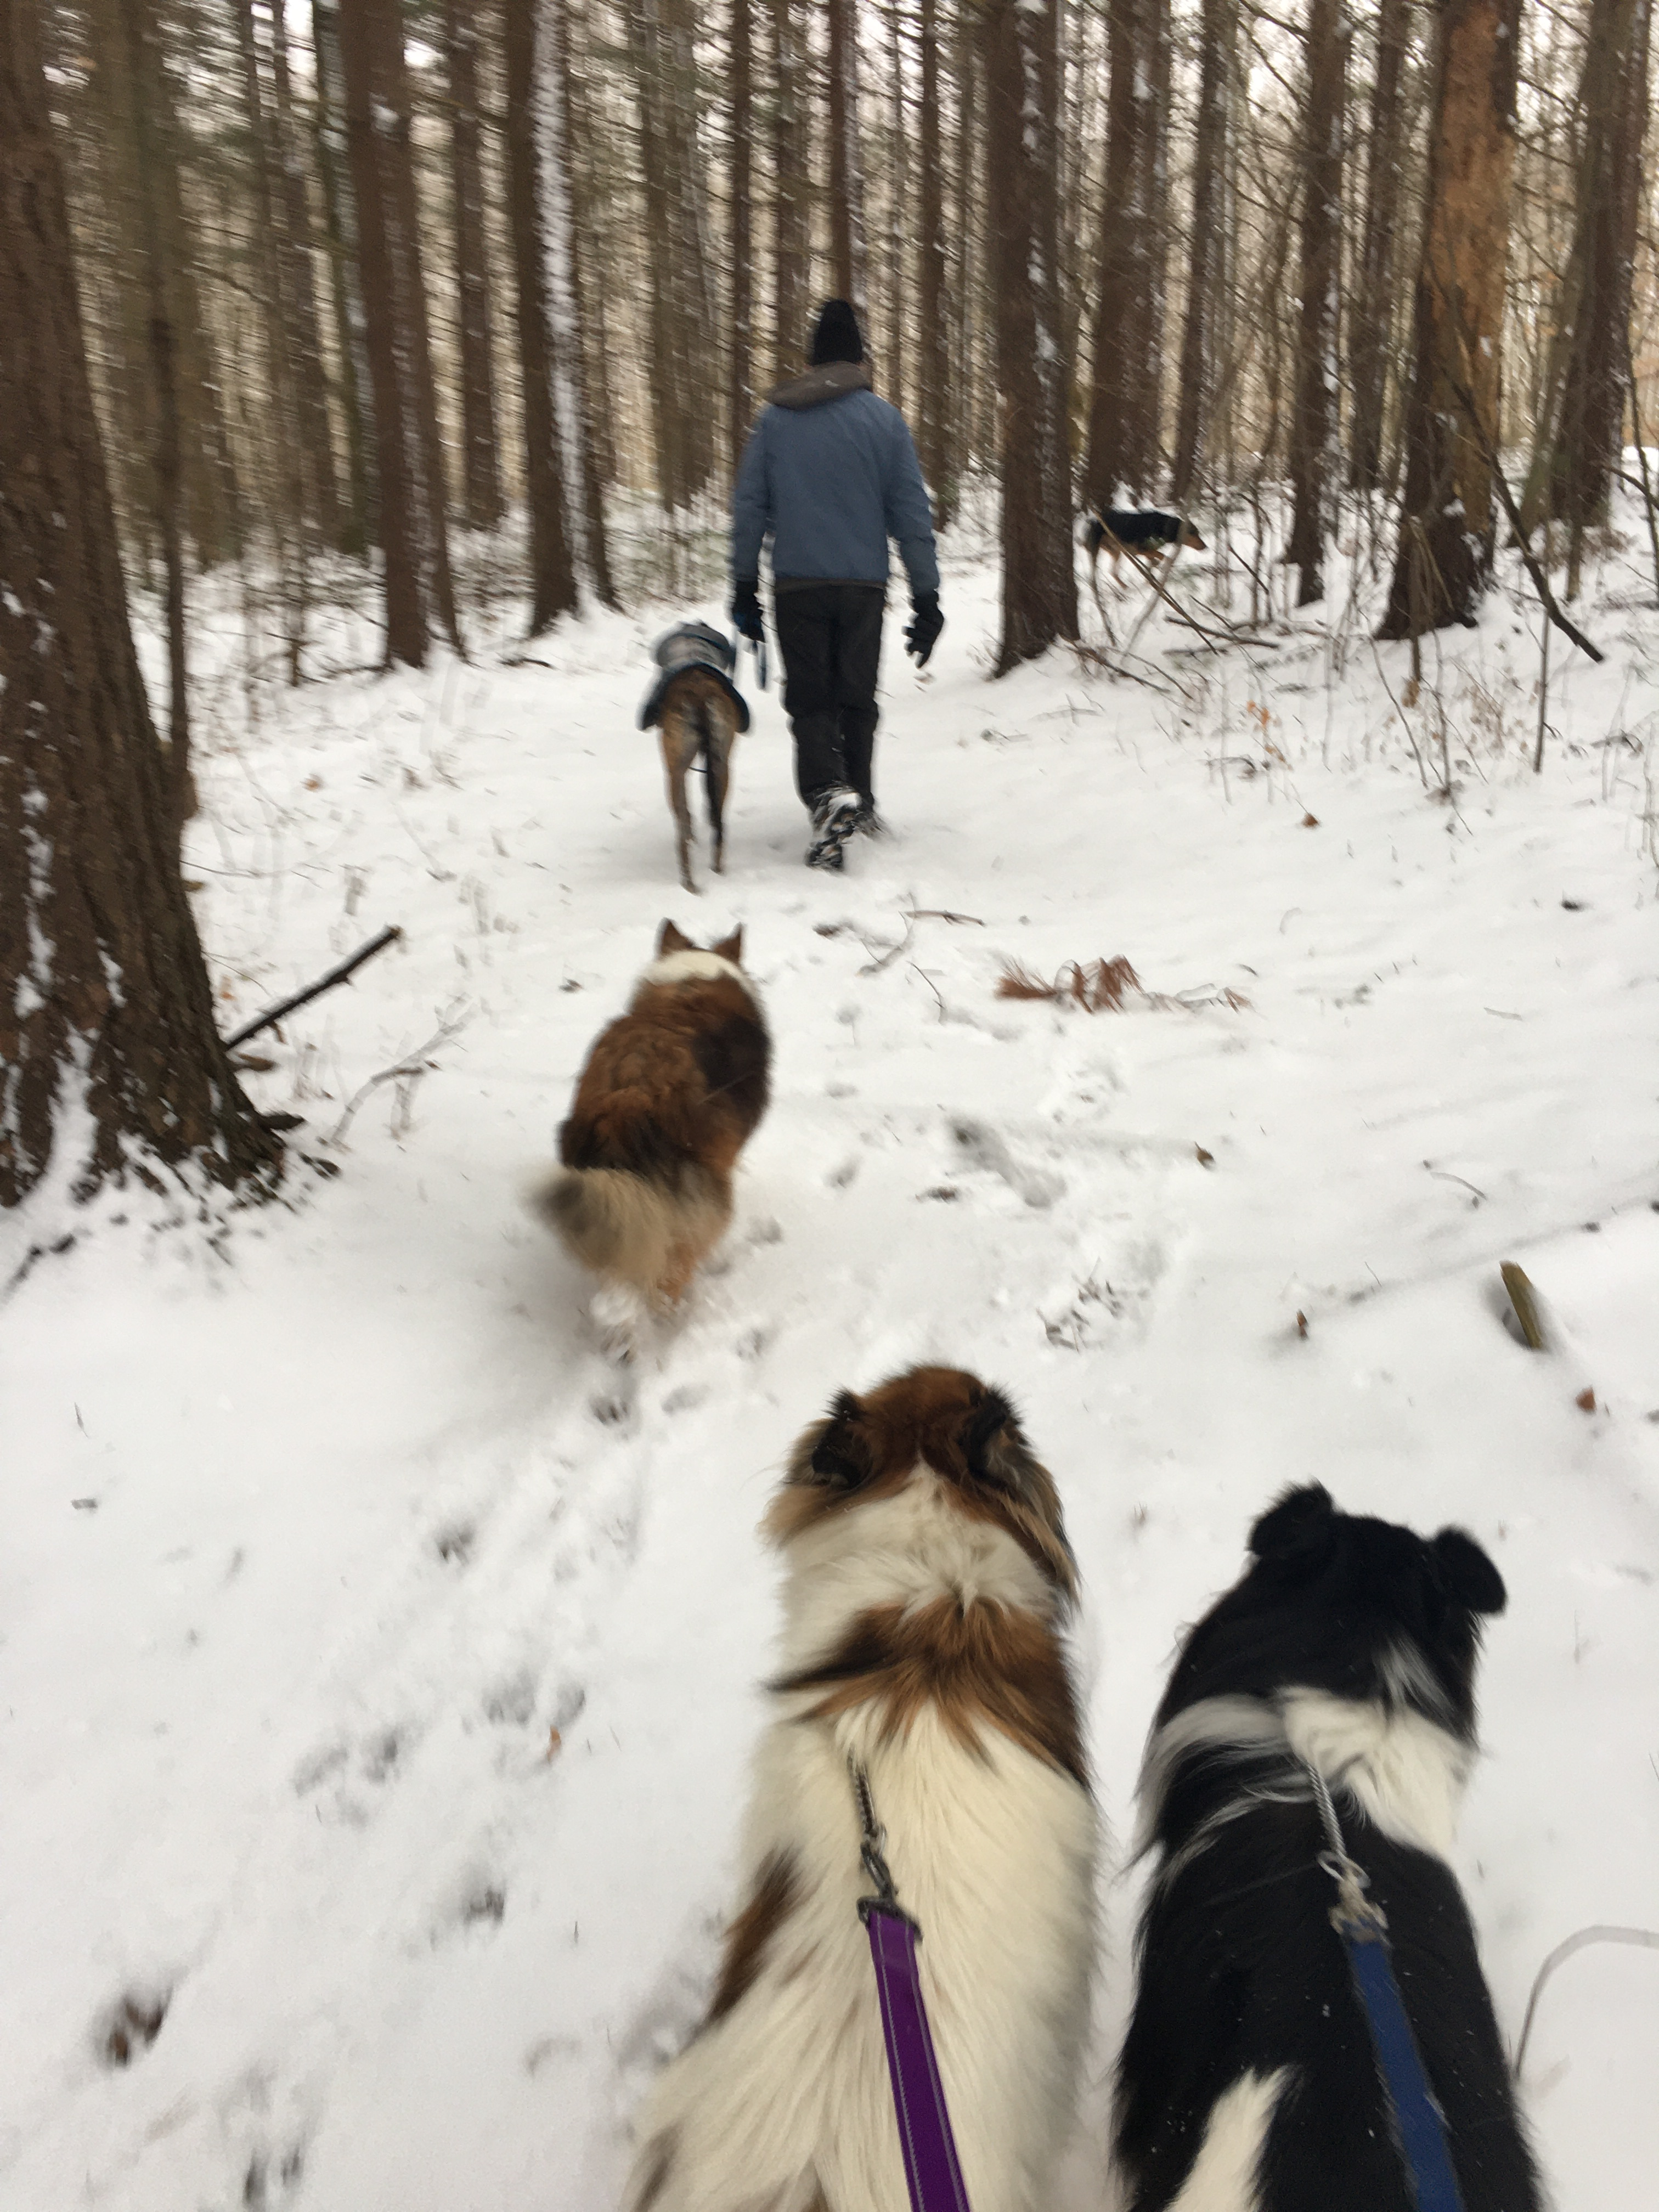 Snowy hike with dogs at West Branch State Park, Ohio